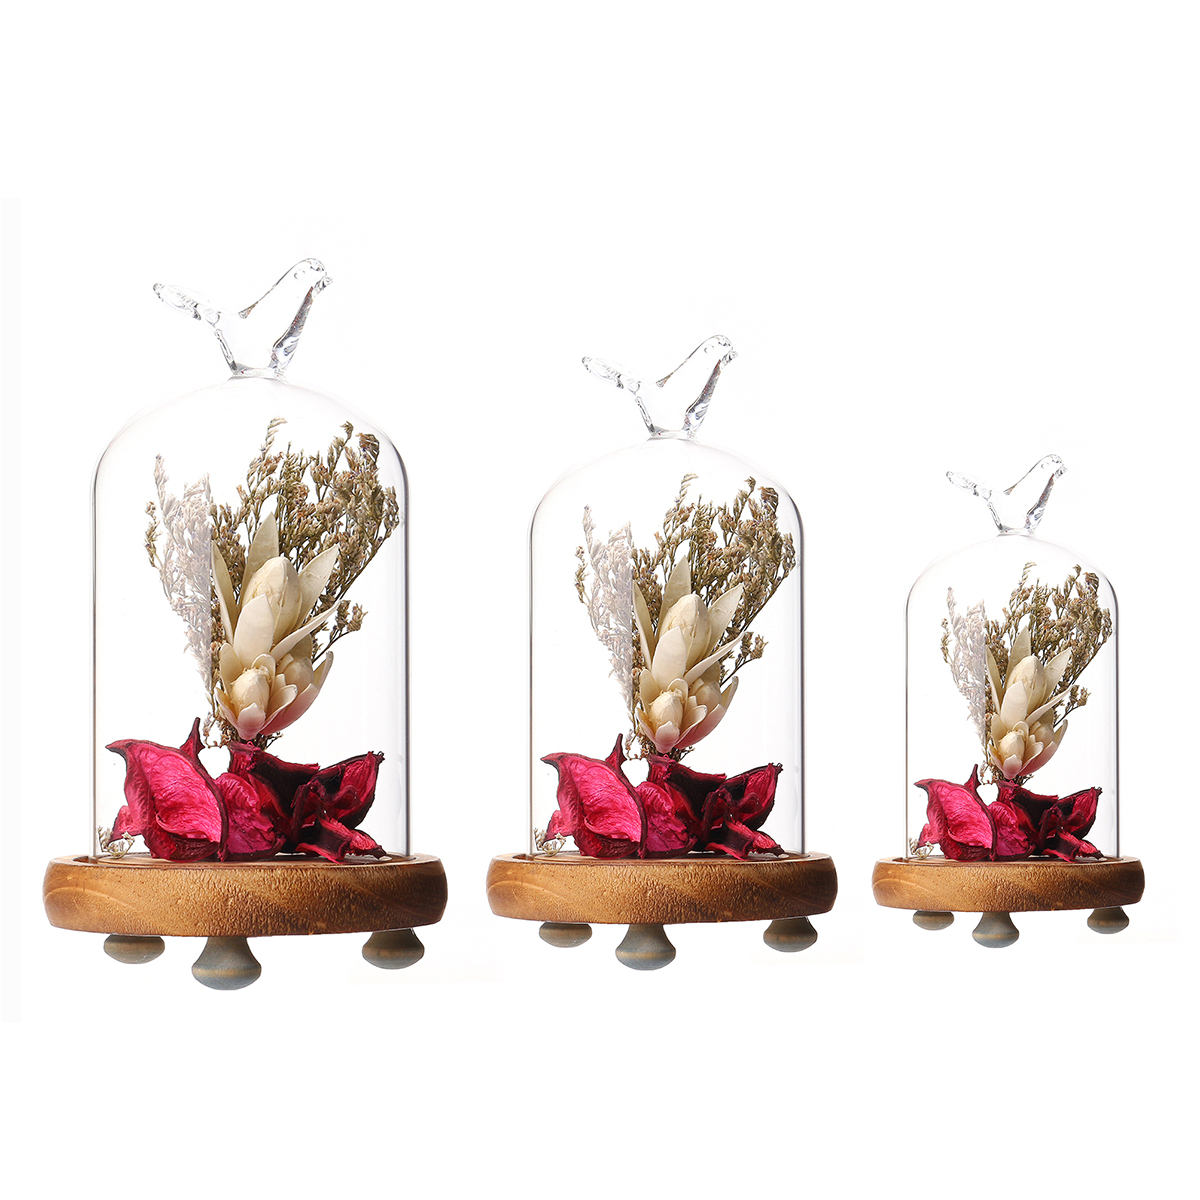 Dried Flower Vase Terrarium Bottle Landscape Glass Container Shade Cover Room Decorations